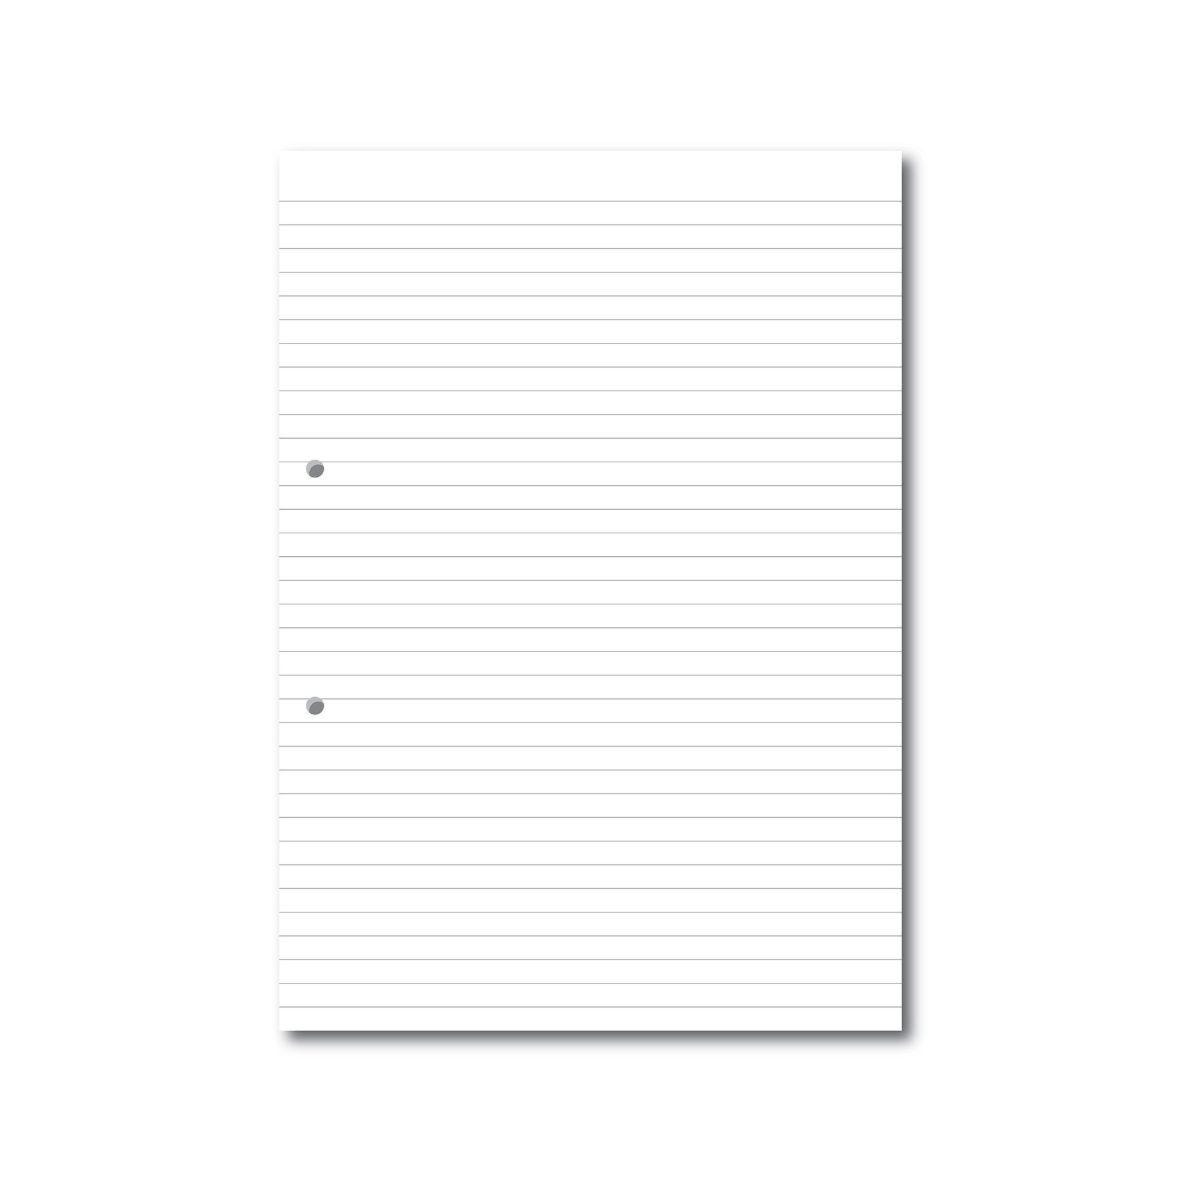 A4 Loose Leaf Paper 8mm Ruled 2 Hole Punched